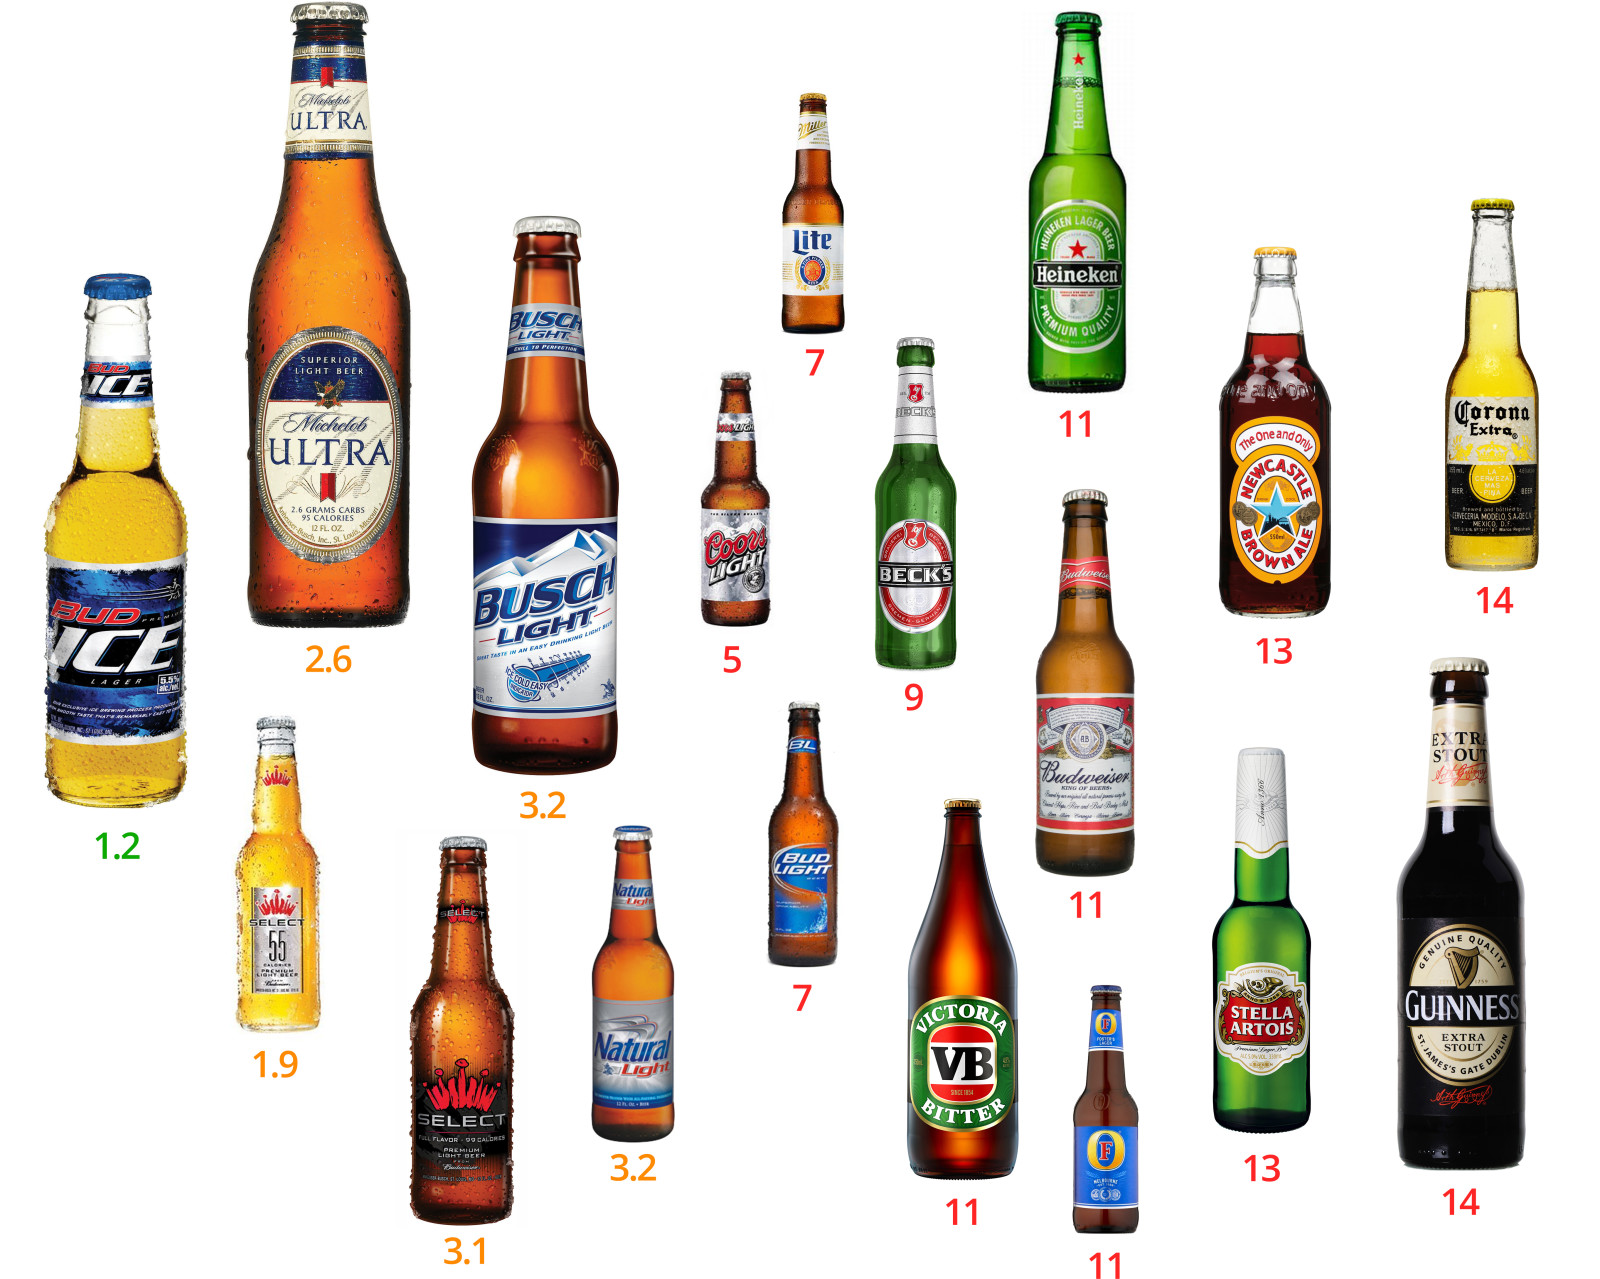 Low-carb beers